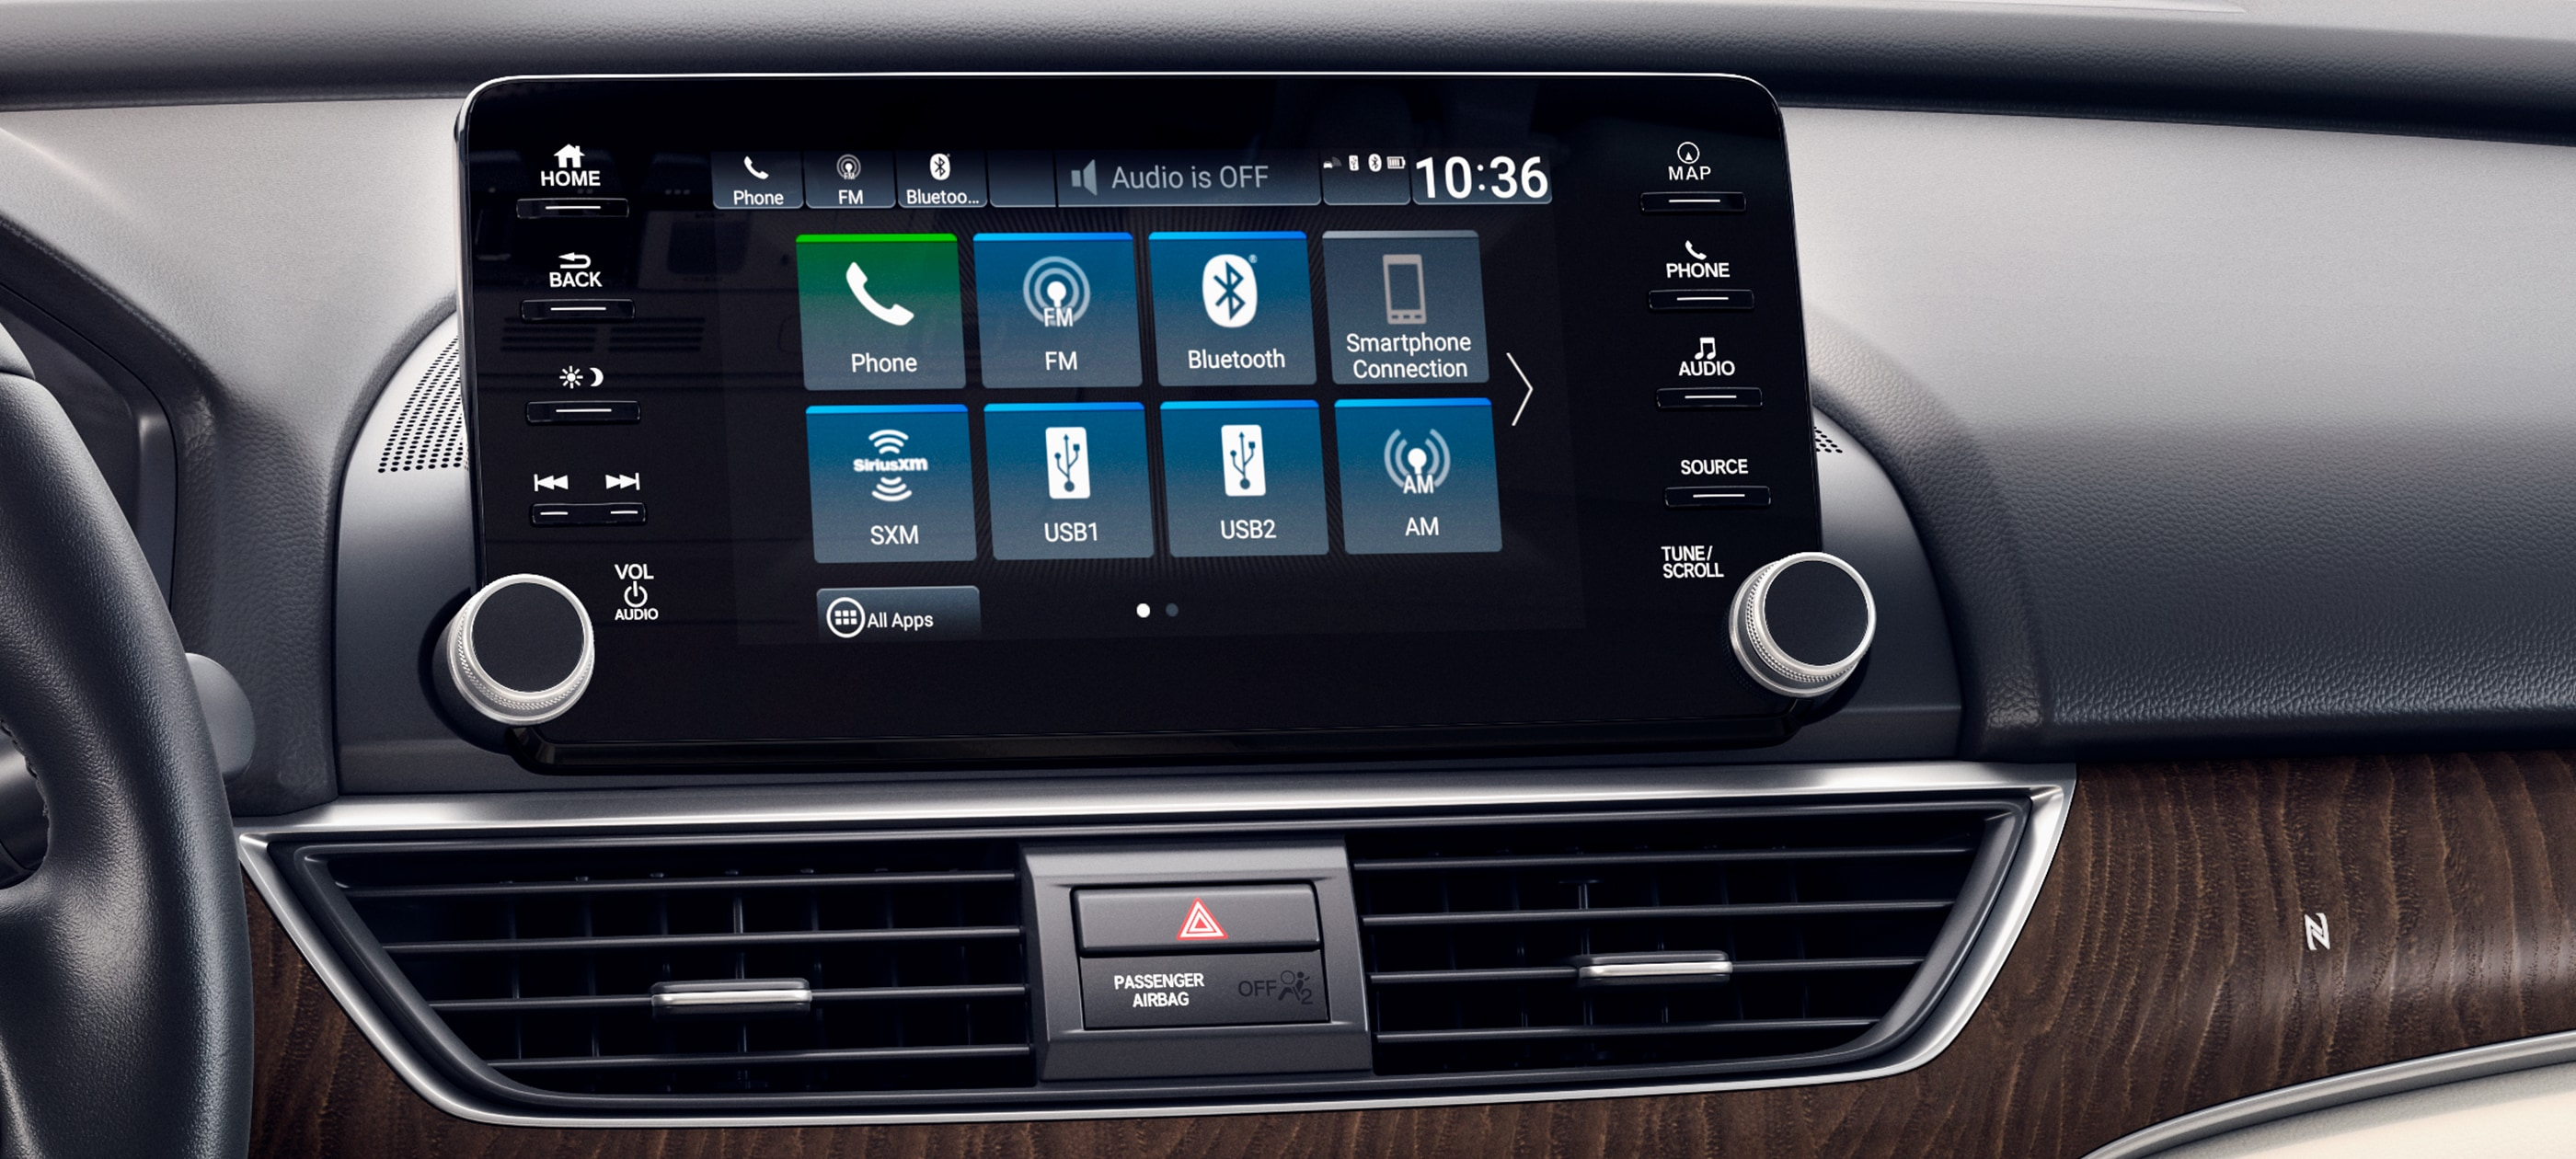 Display Audio touch-screen detail in 2020 Honda Accord Touring 2.0T with Ivory Leather.